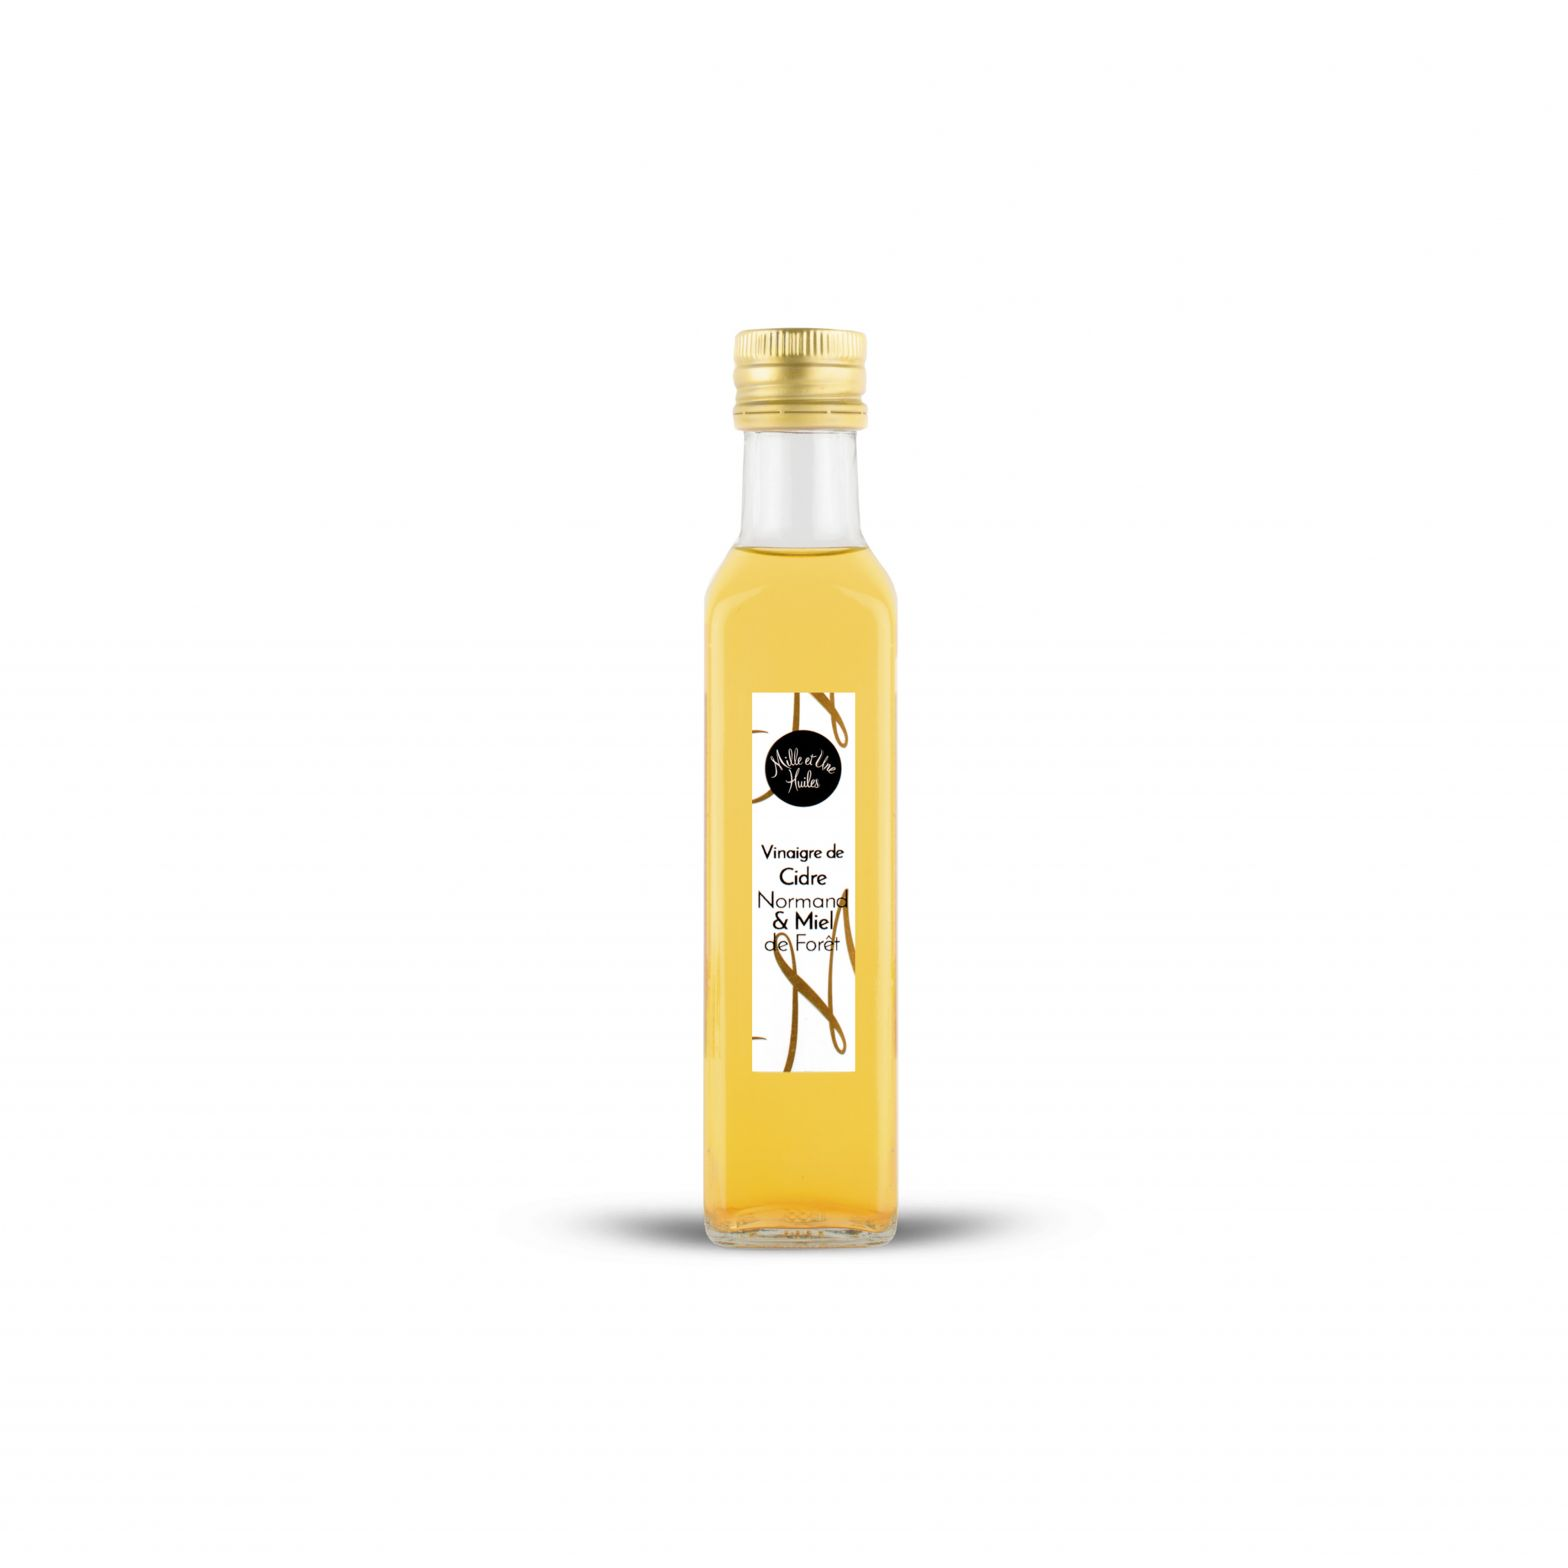 Norman AOC apple cider vinegar with honey